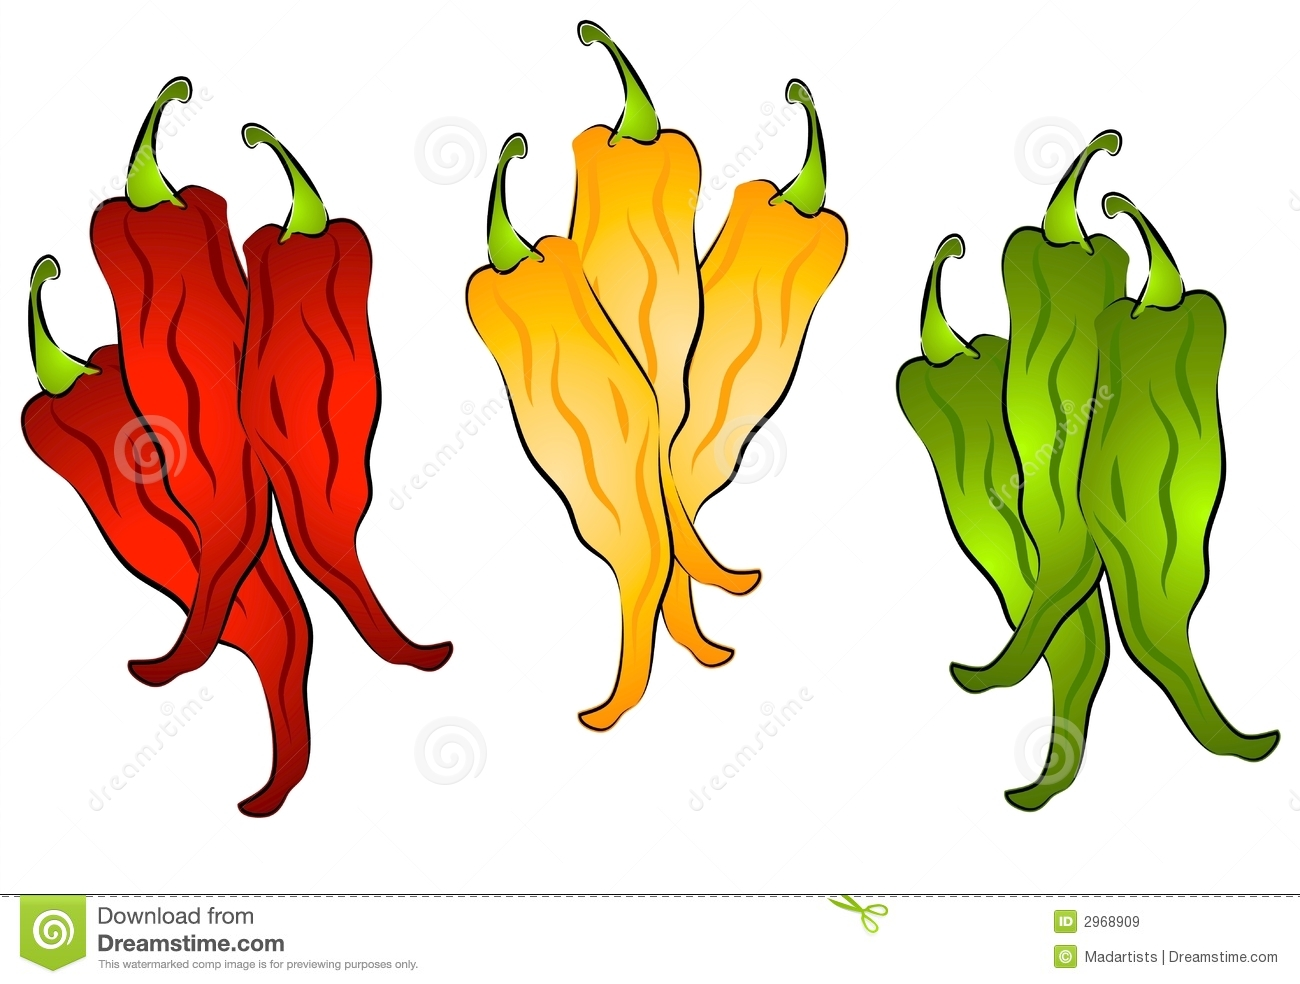 hot chili peppers clip art 2 stock illustration illustration of rh dreamstime com red hot chili pepper clip art free red chili pepper clipart free